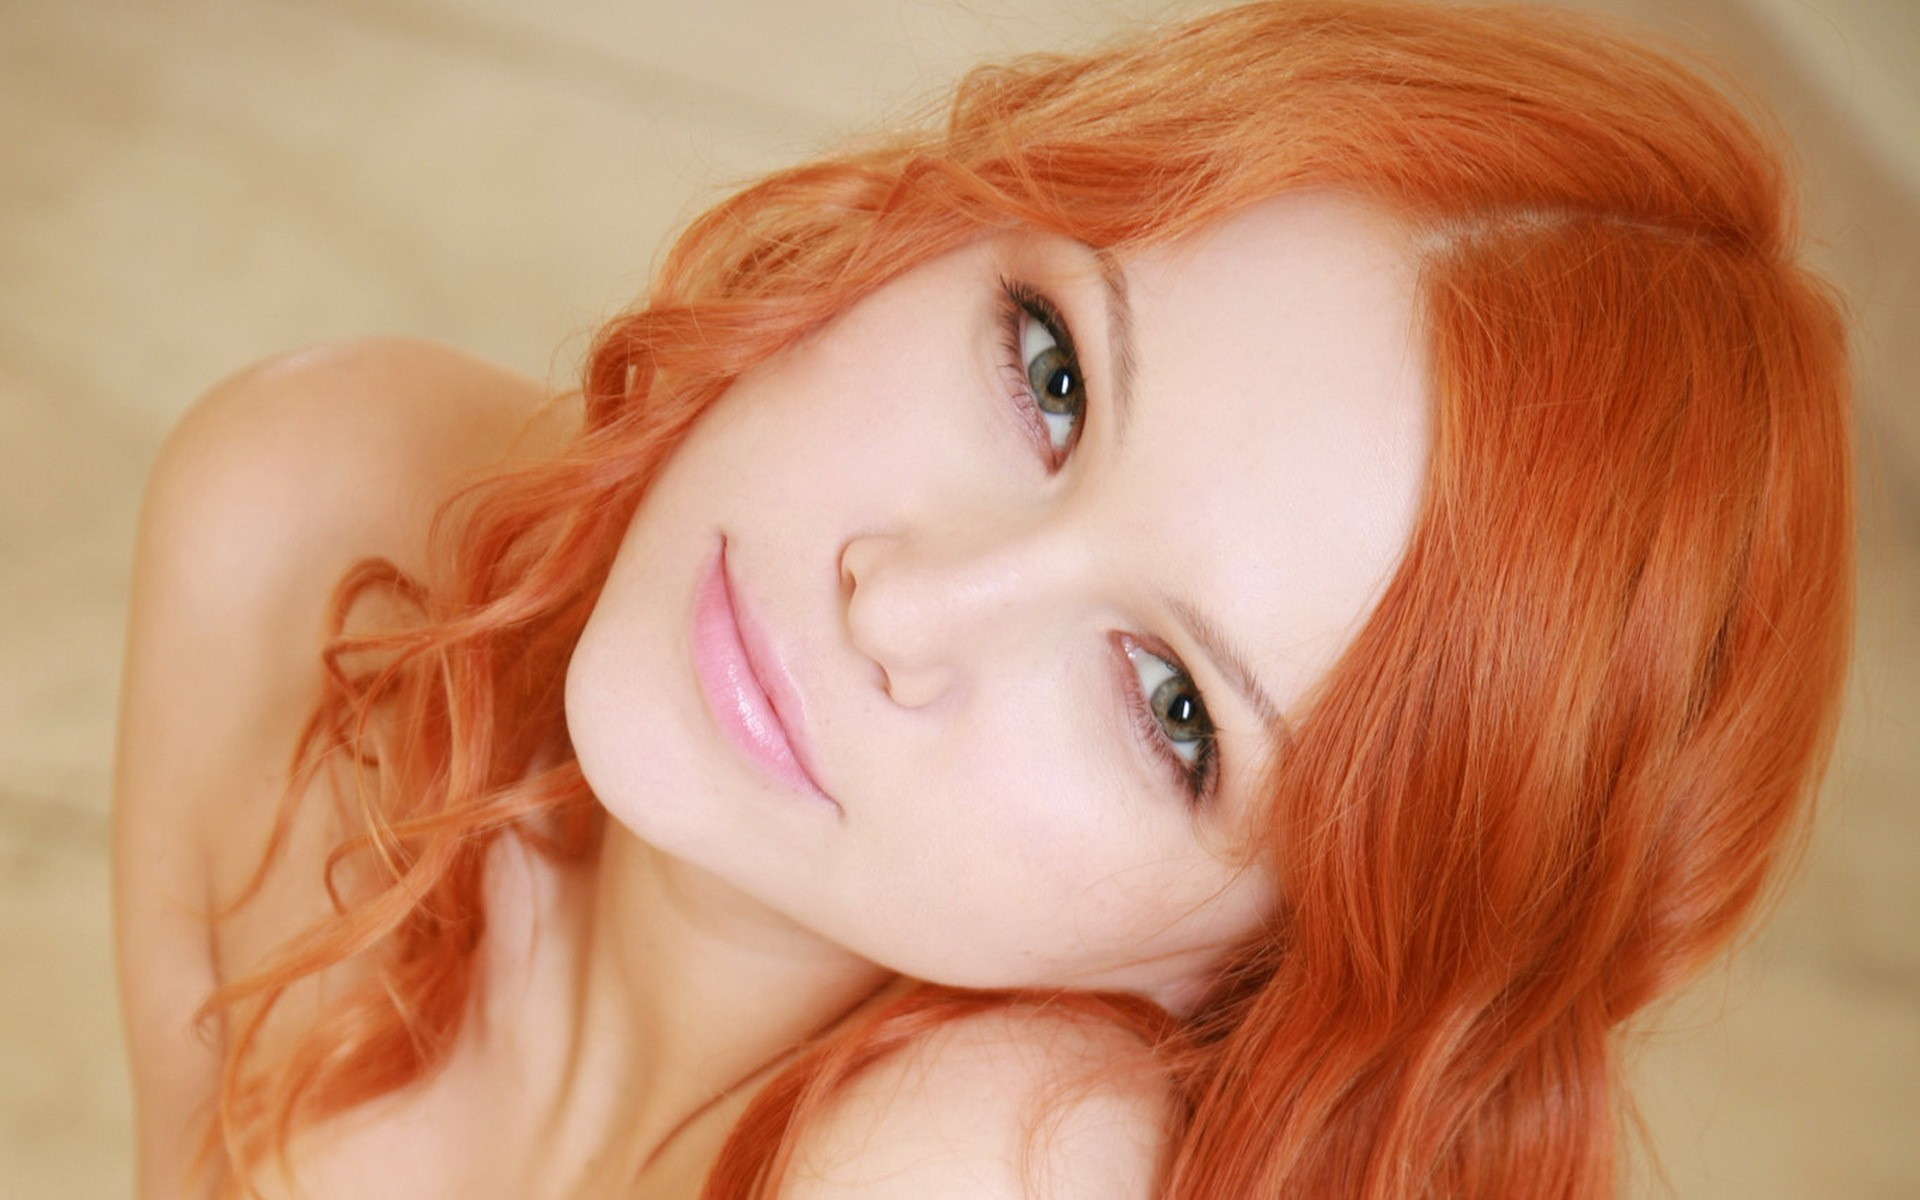 woman redheads faces Lidiya HD Wallpaper